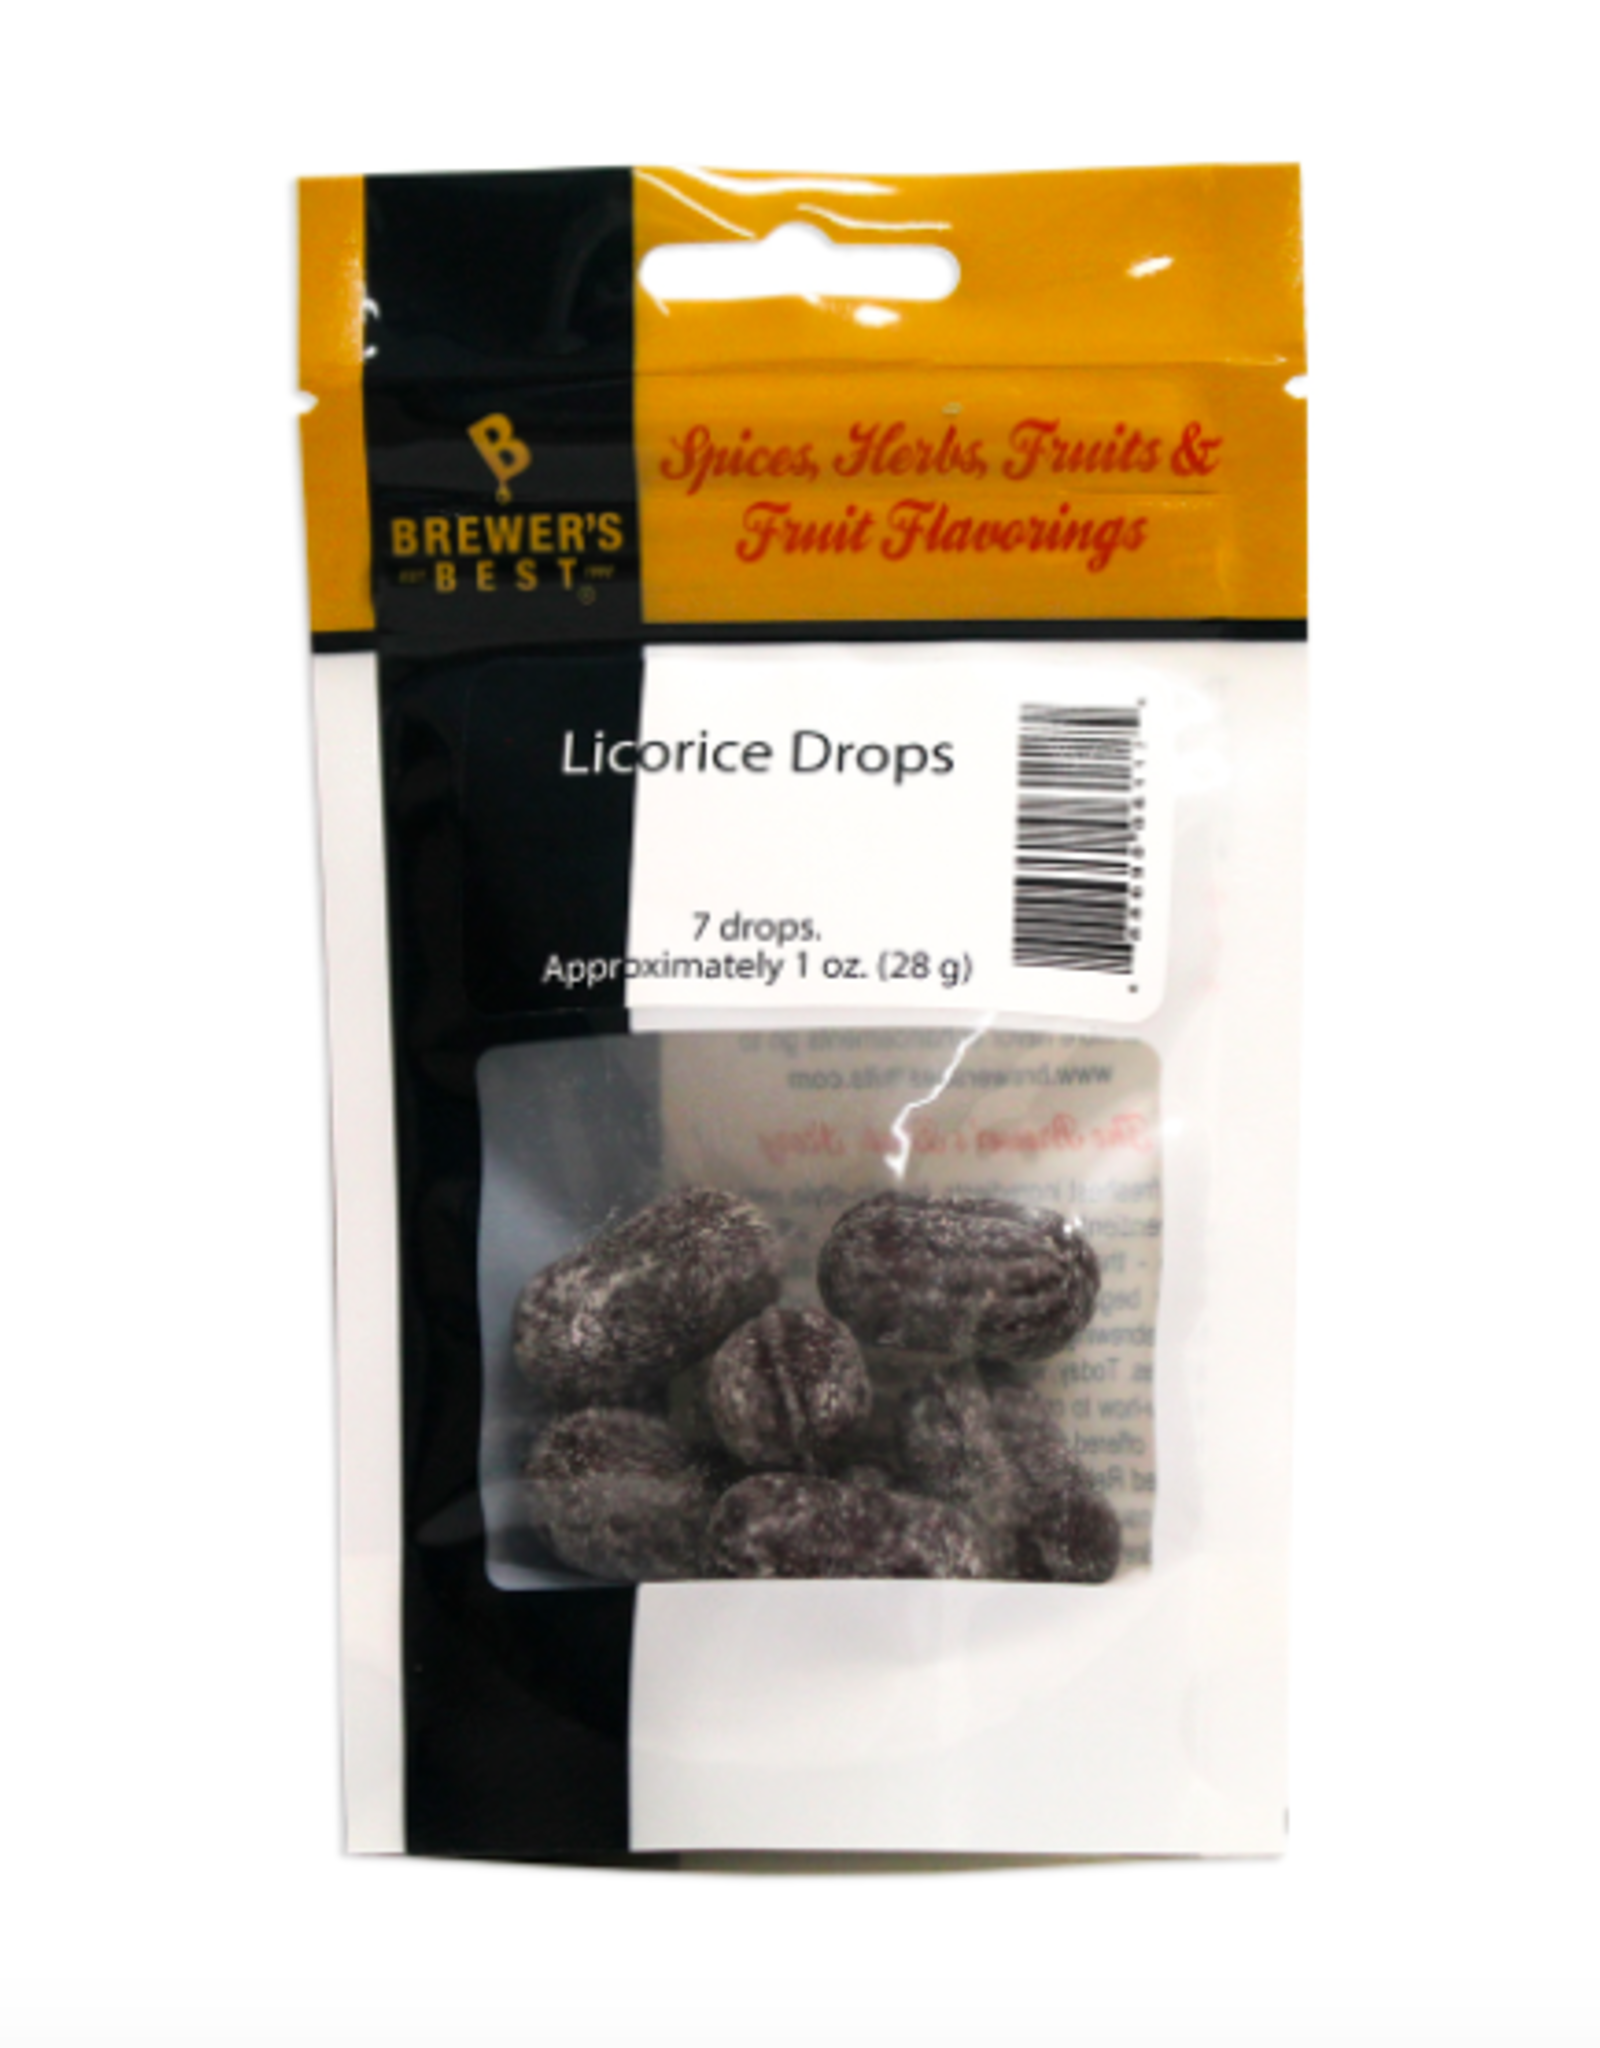 LICORICE DROPS (7 DROPS - APPROX. 1 OZ.)